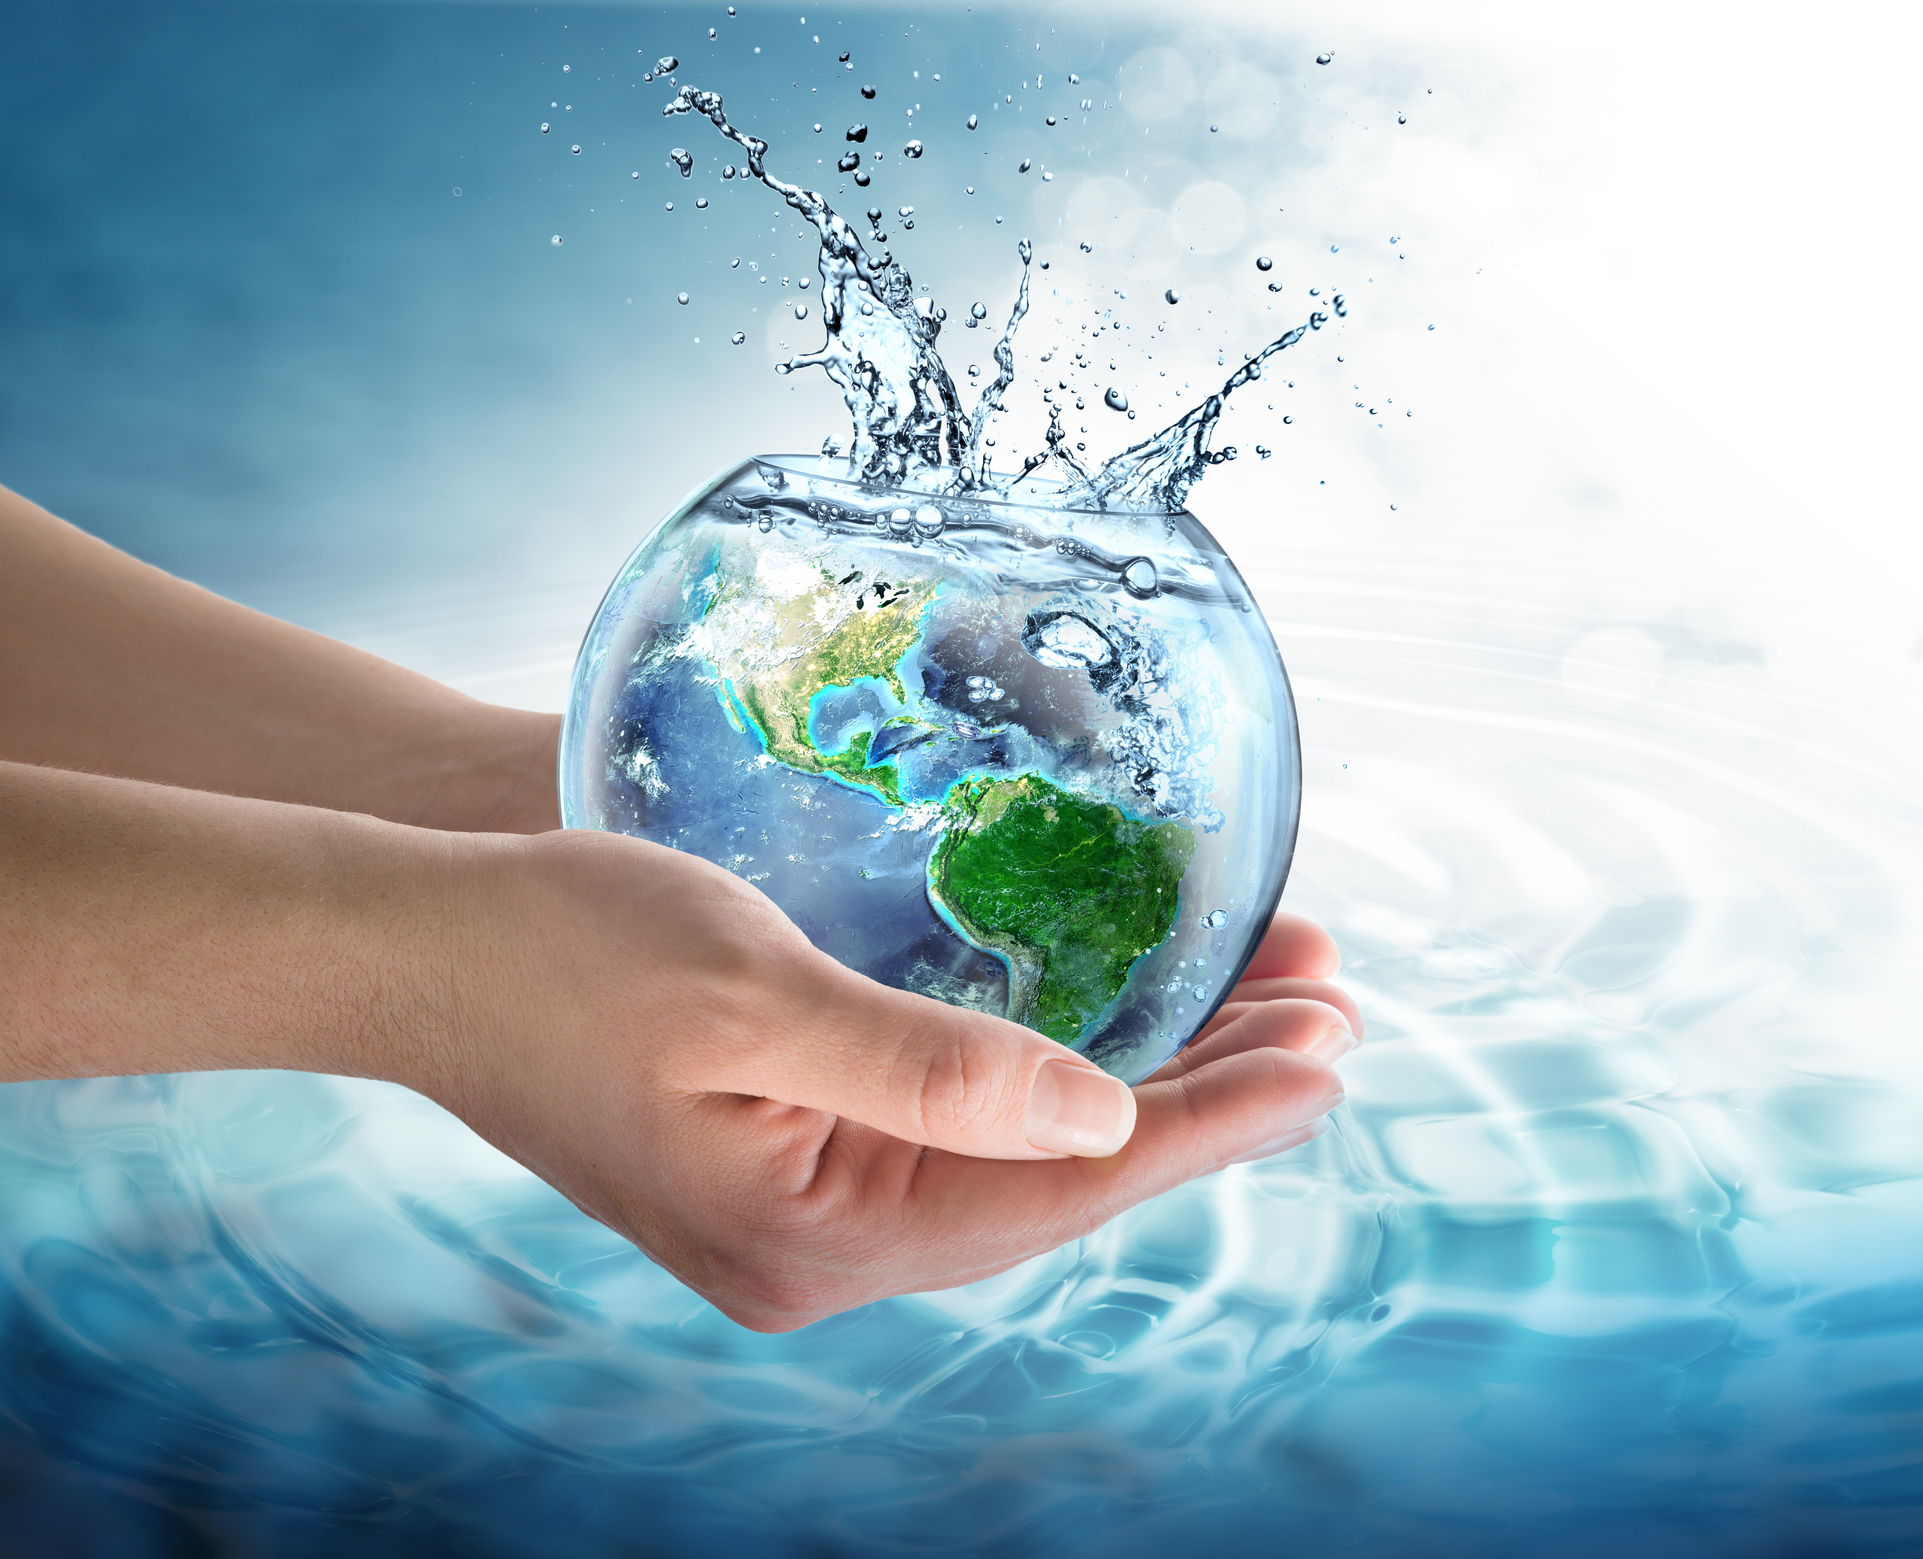 hands holding a globe of water